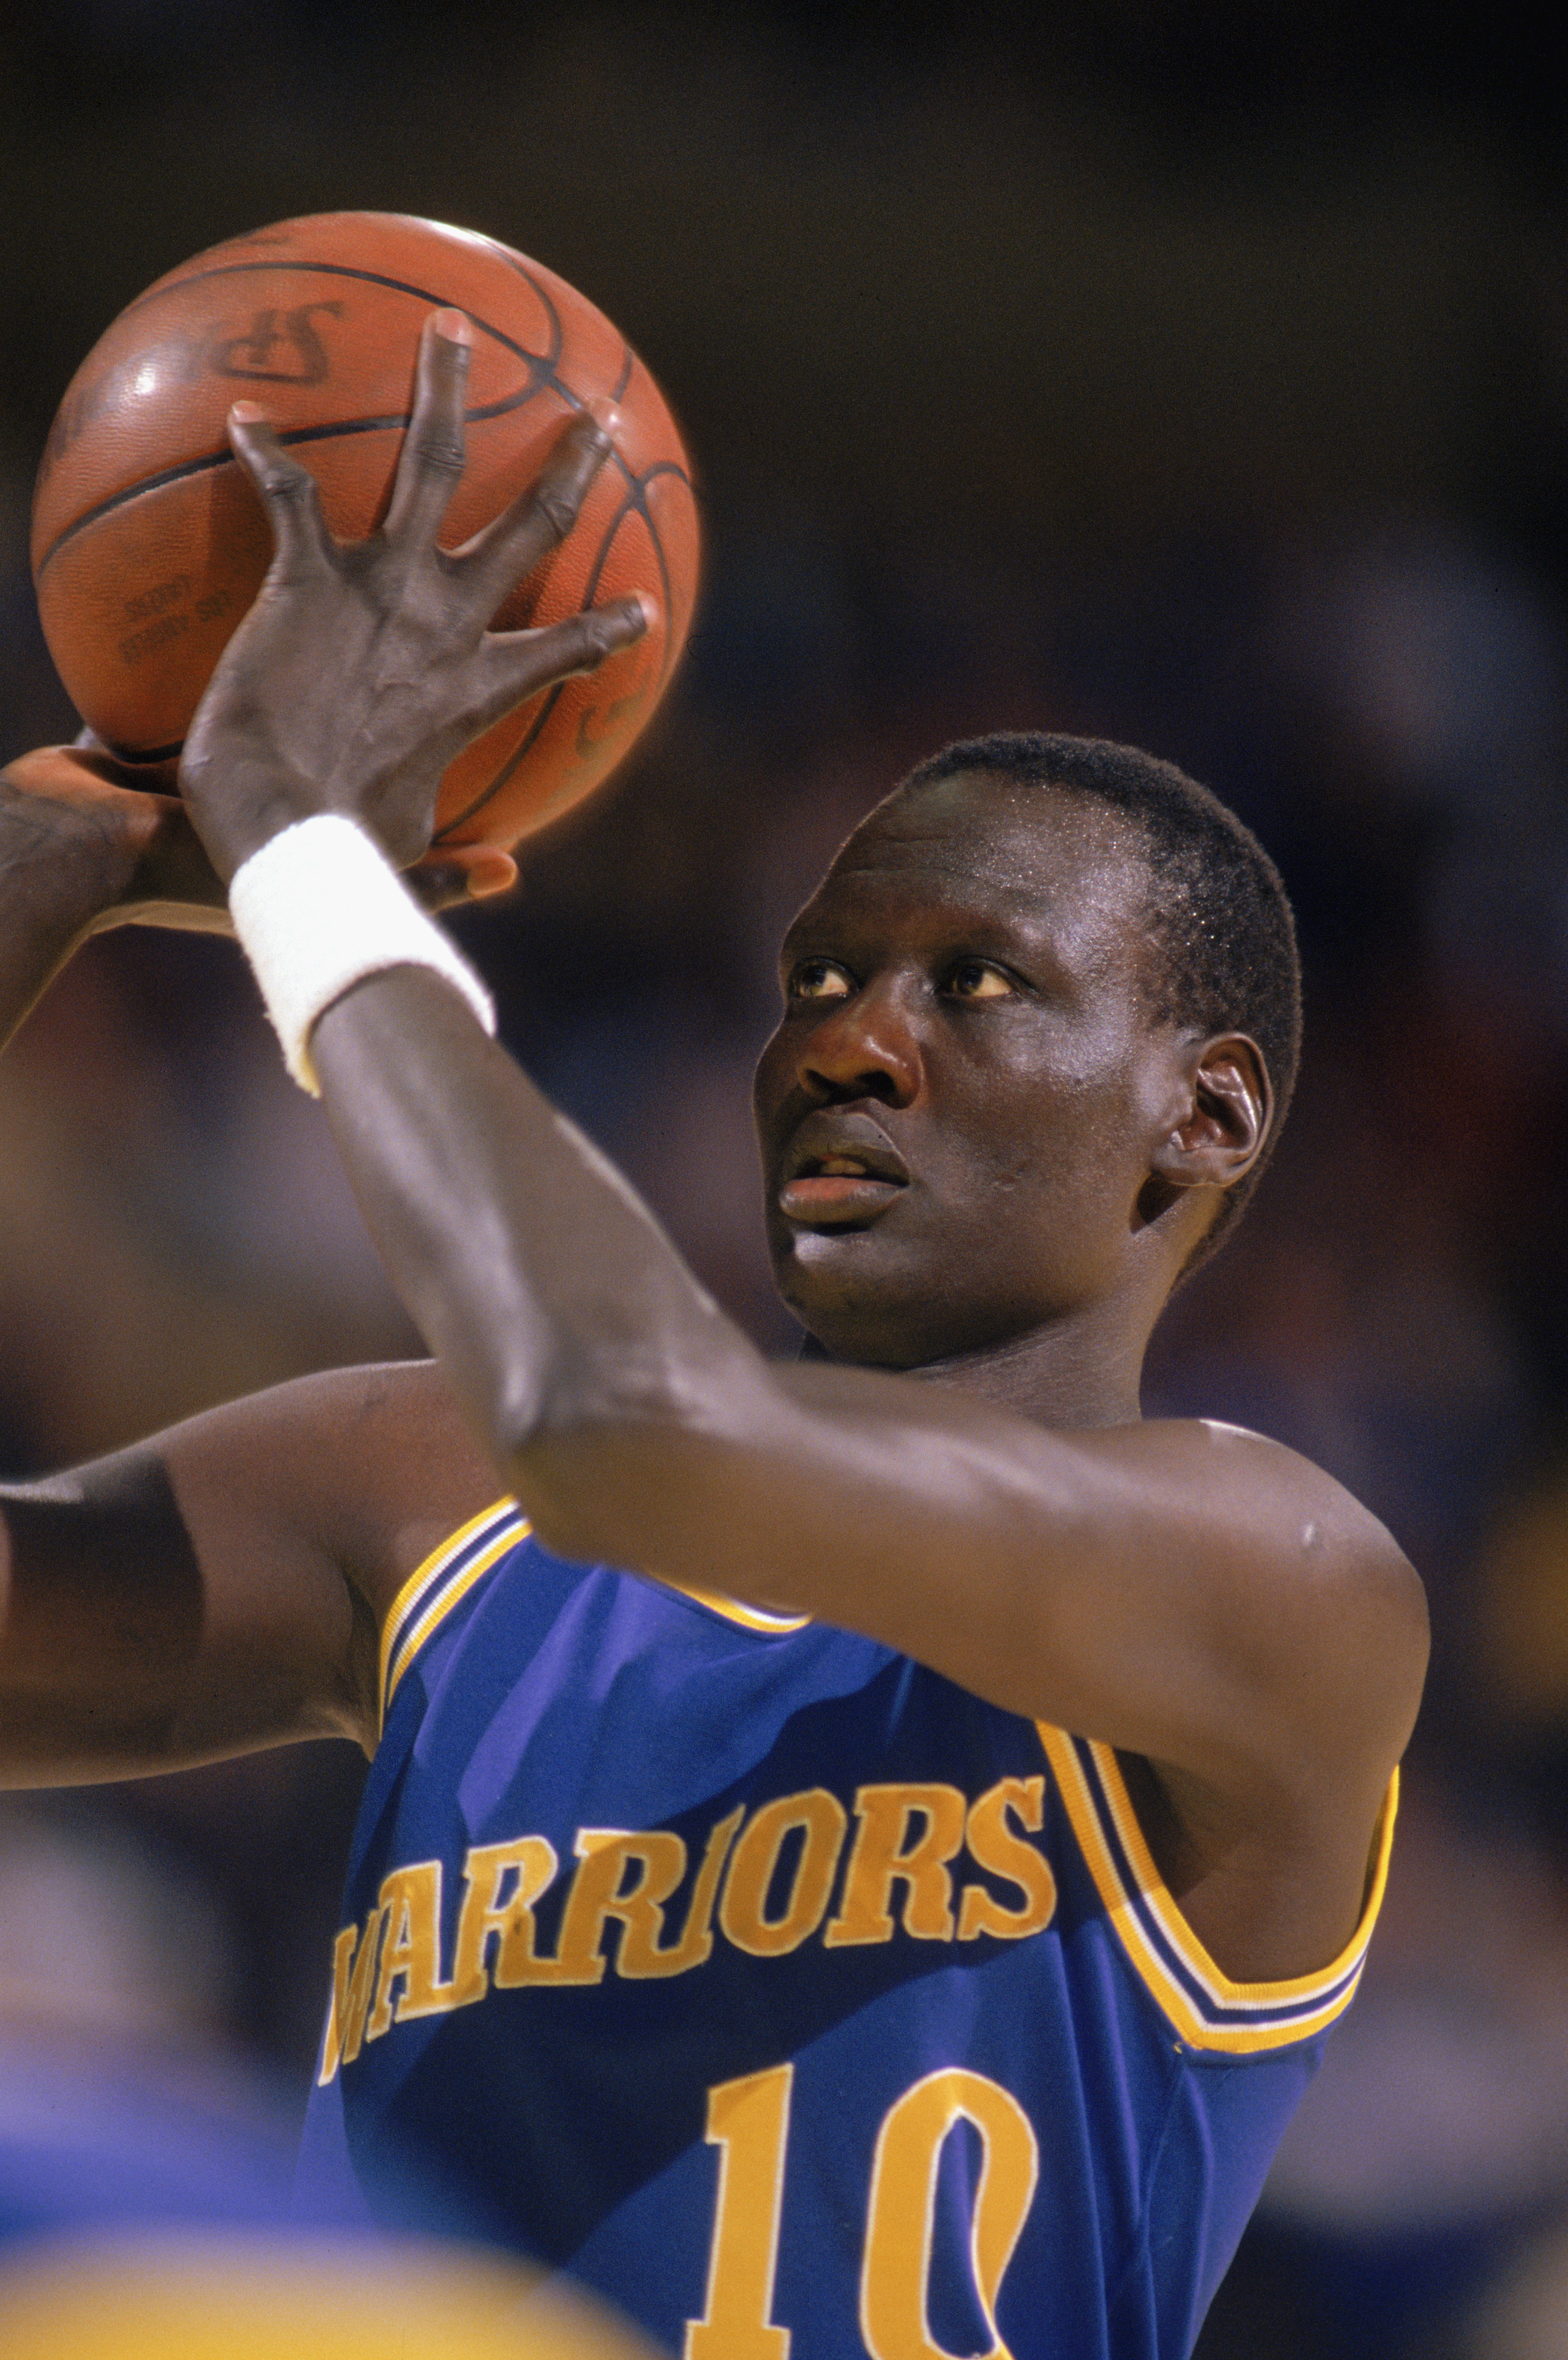 1988:  Manute Bol #10 of the Golden State Warriors looks to shoot during an NBA game in the 1988-89 season. NOTE TO USER: User expressly acknowledges and agrees that, by downloading and/or using this Photograph, User is consenting to the terms and conditi